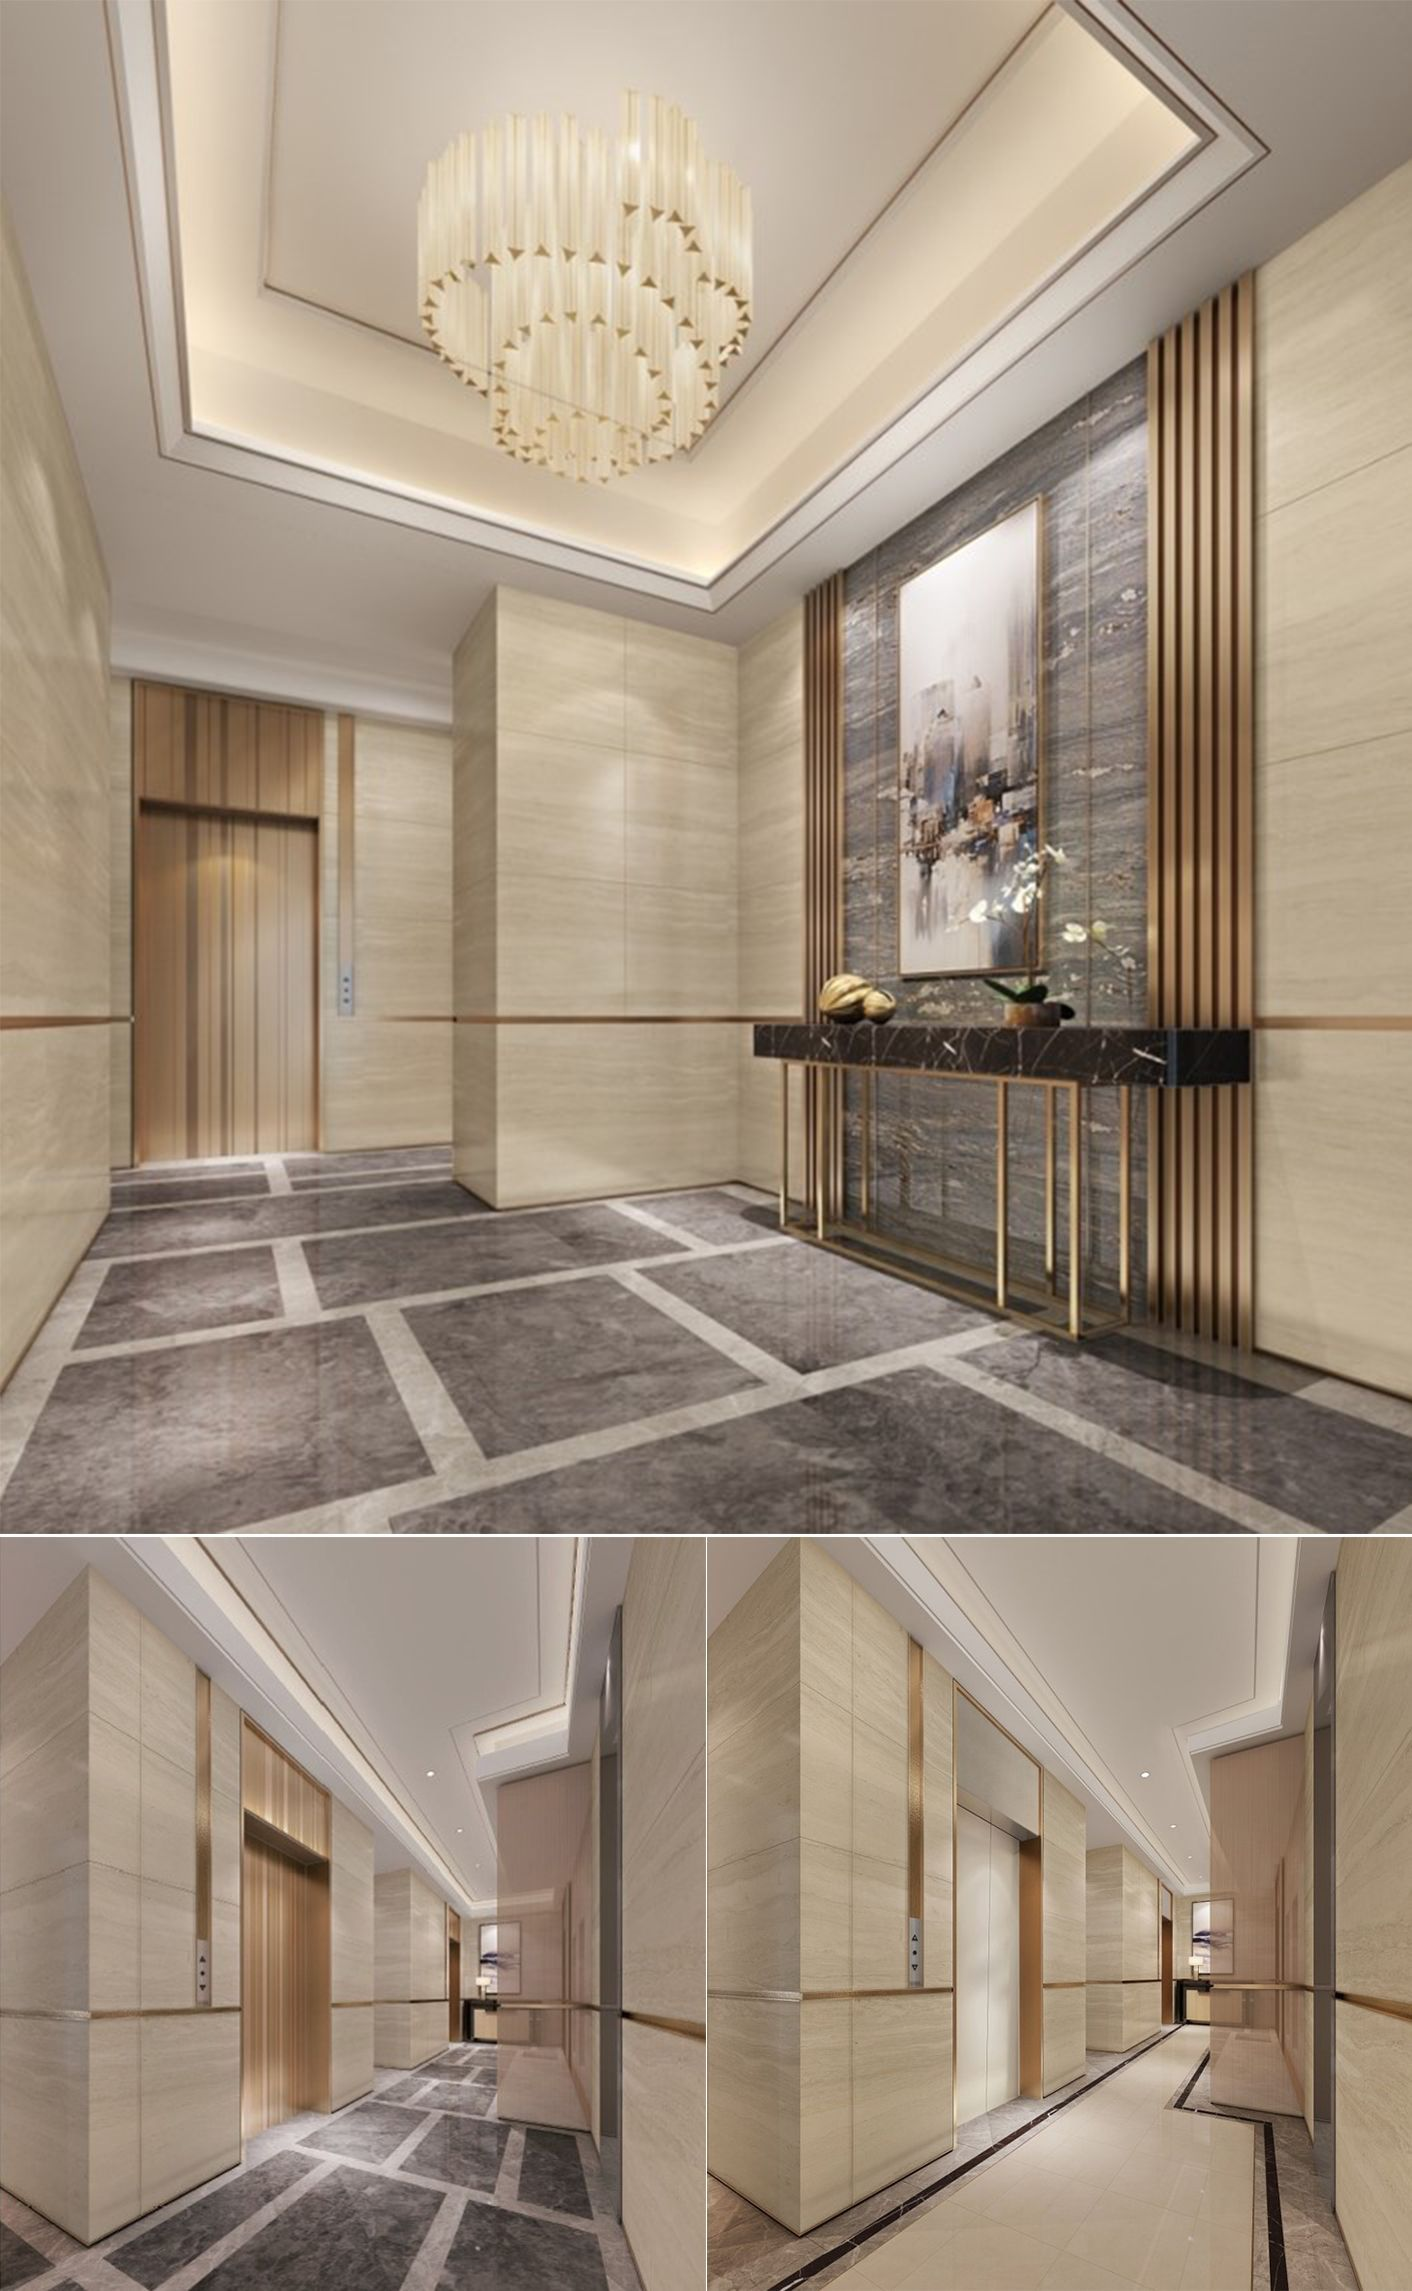 Ready These Are The Most Luxurious Hotel Lobby Designs With